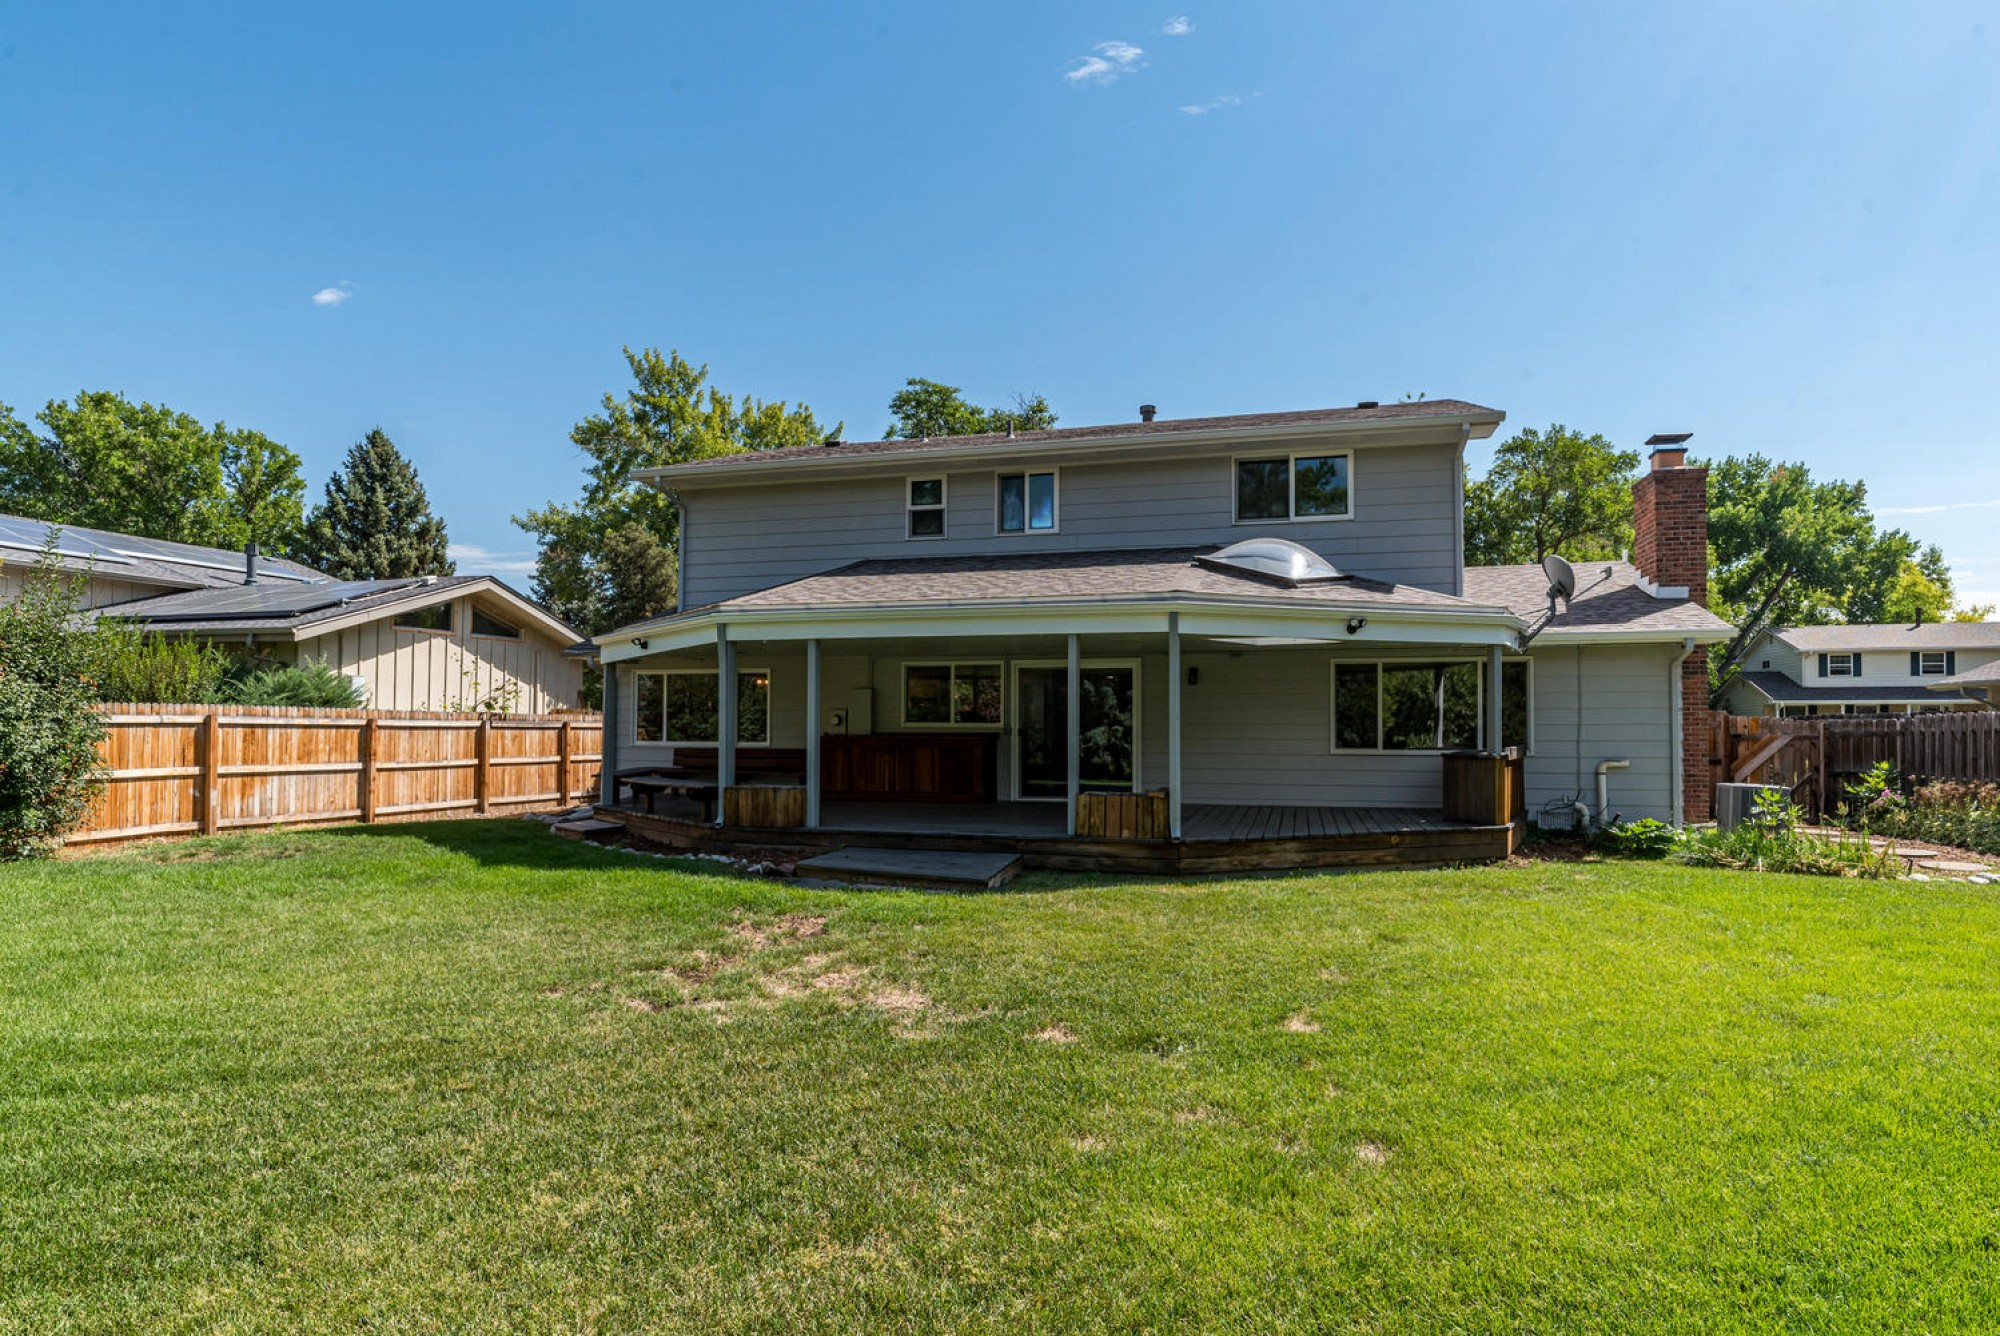 4143 S. Rosemary Way, Denver, CO 80237